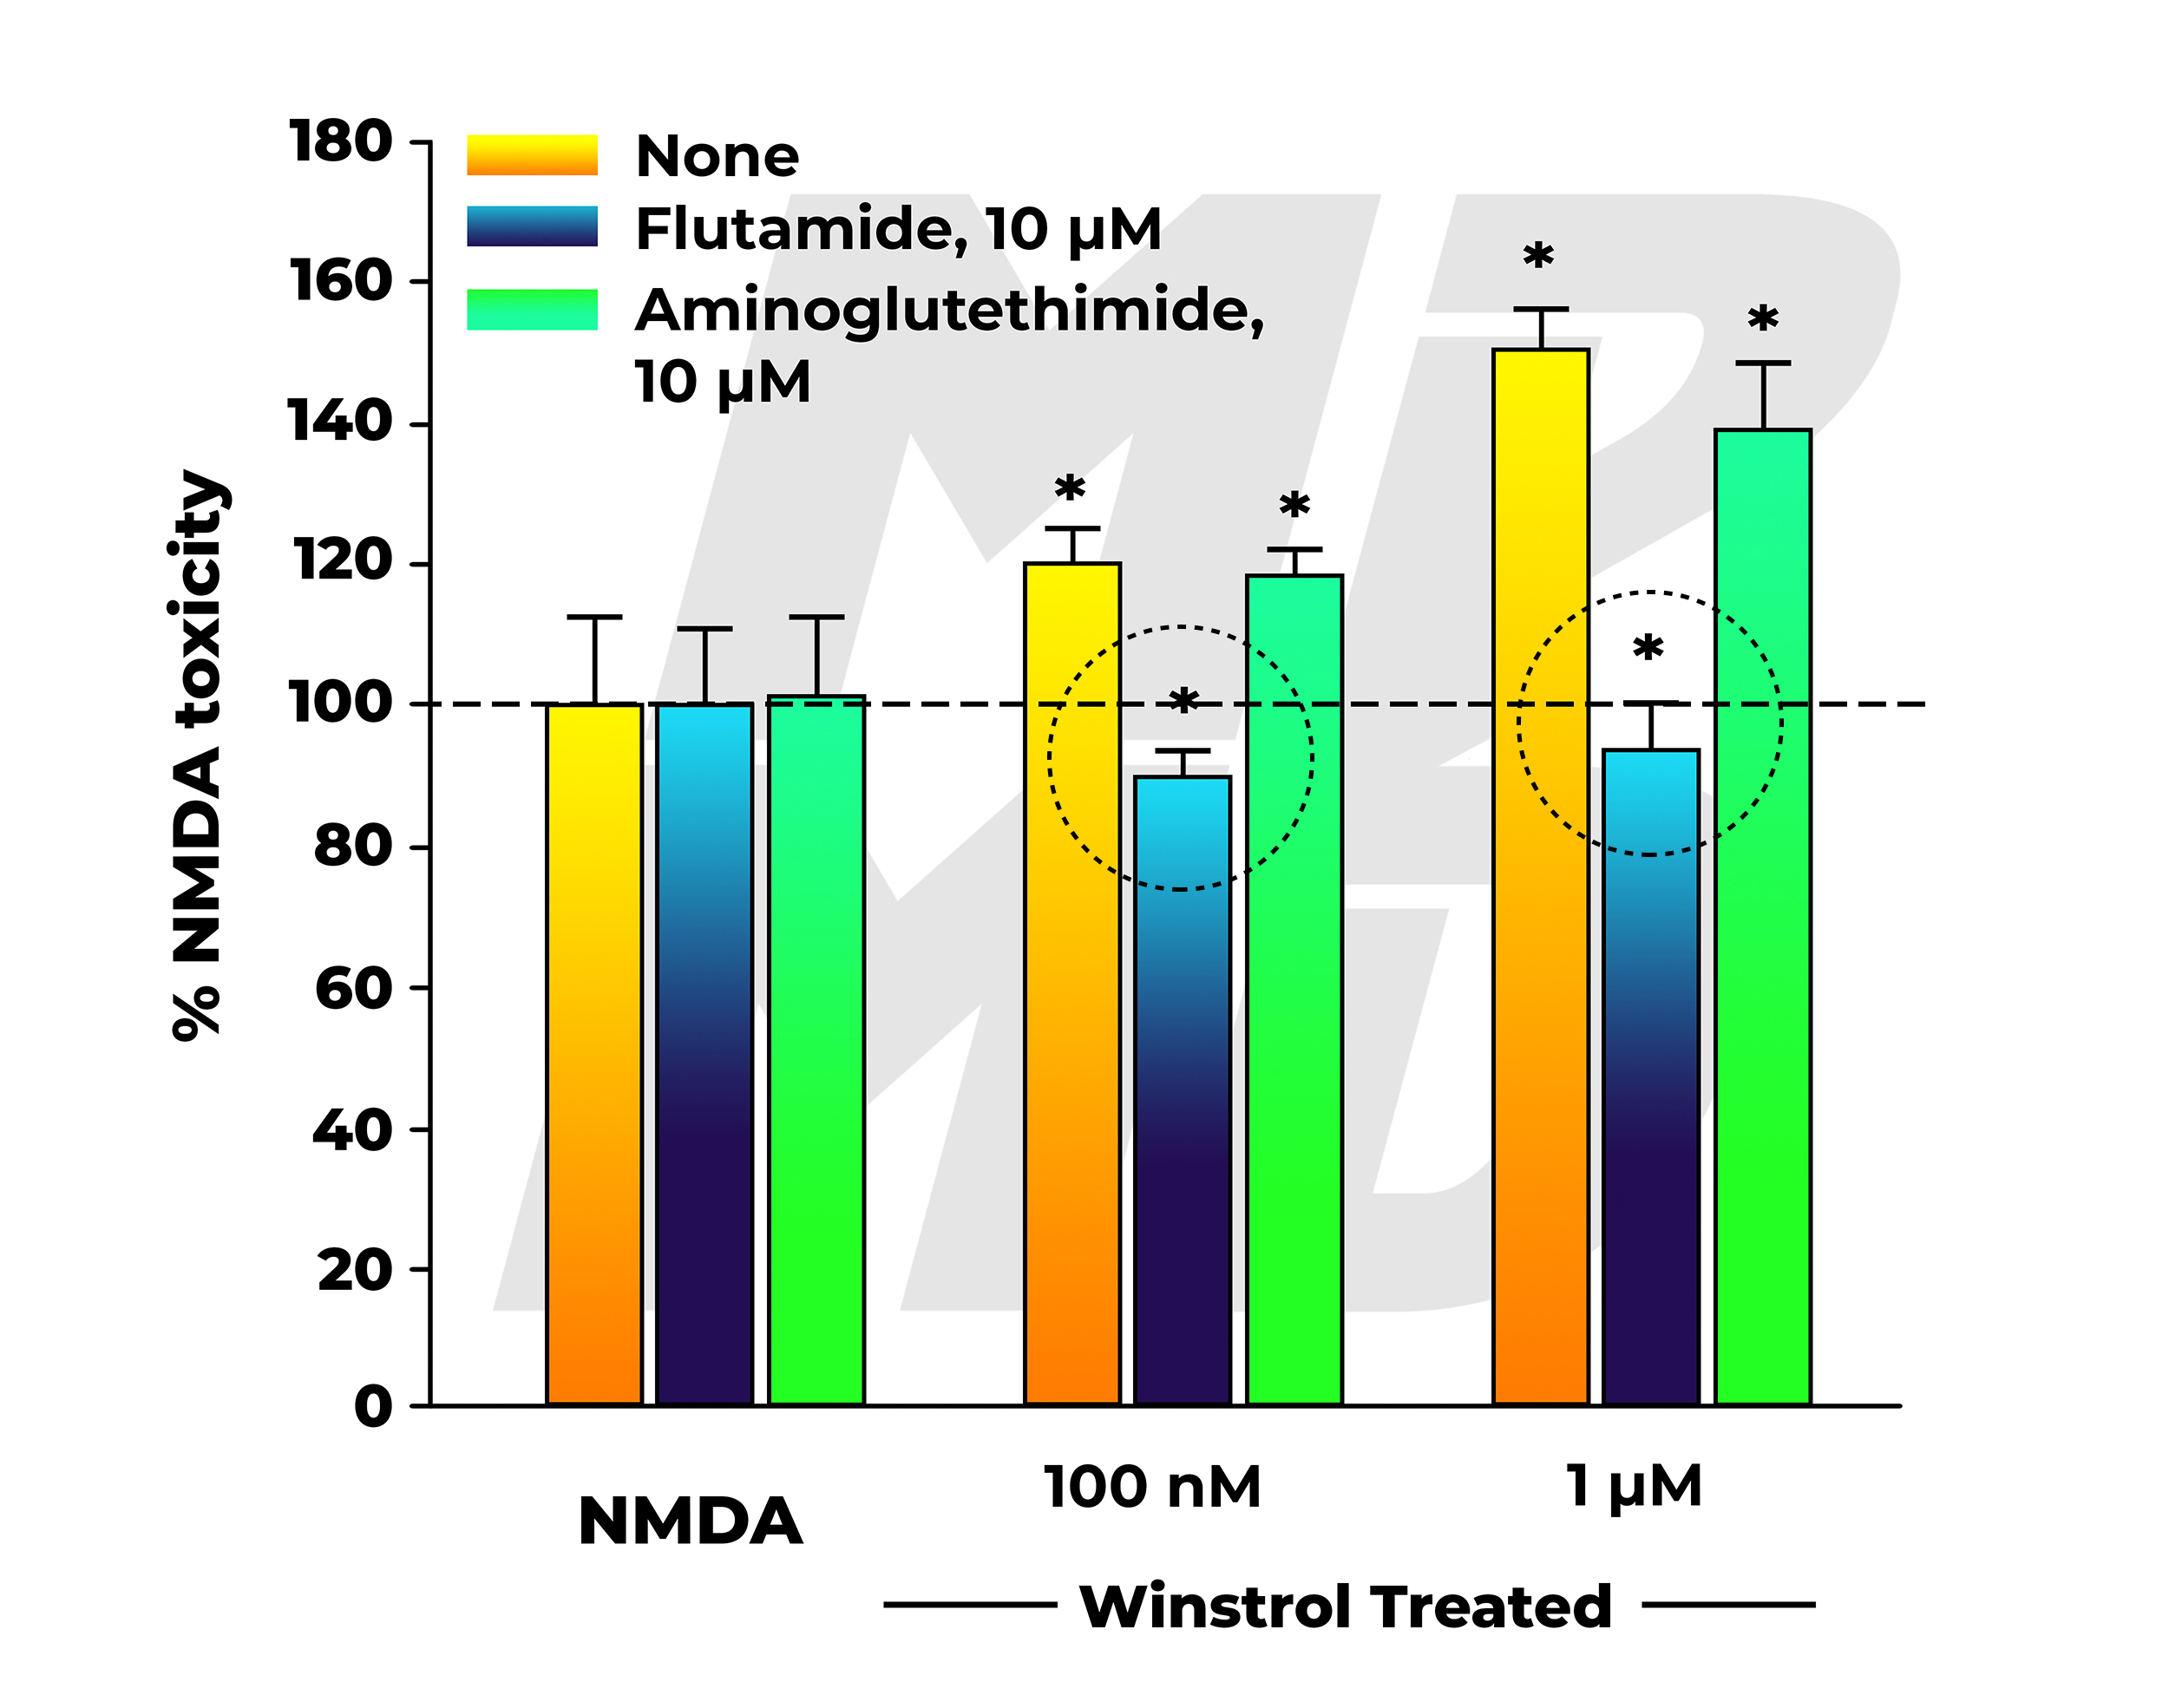 NMDA Neurotoxicity In Winstrol (Stanozolol) Treated Group Co-Administered Nothing, Flutamide, Or Aminoglutethimide - Flutamide Anti-Androgen Activity Highlighted